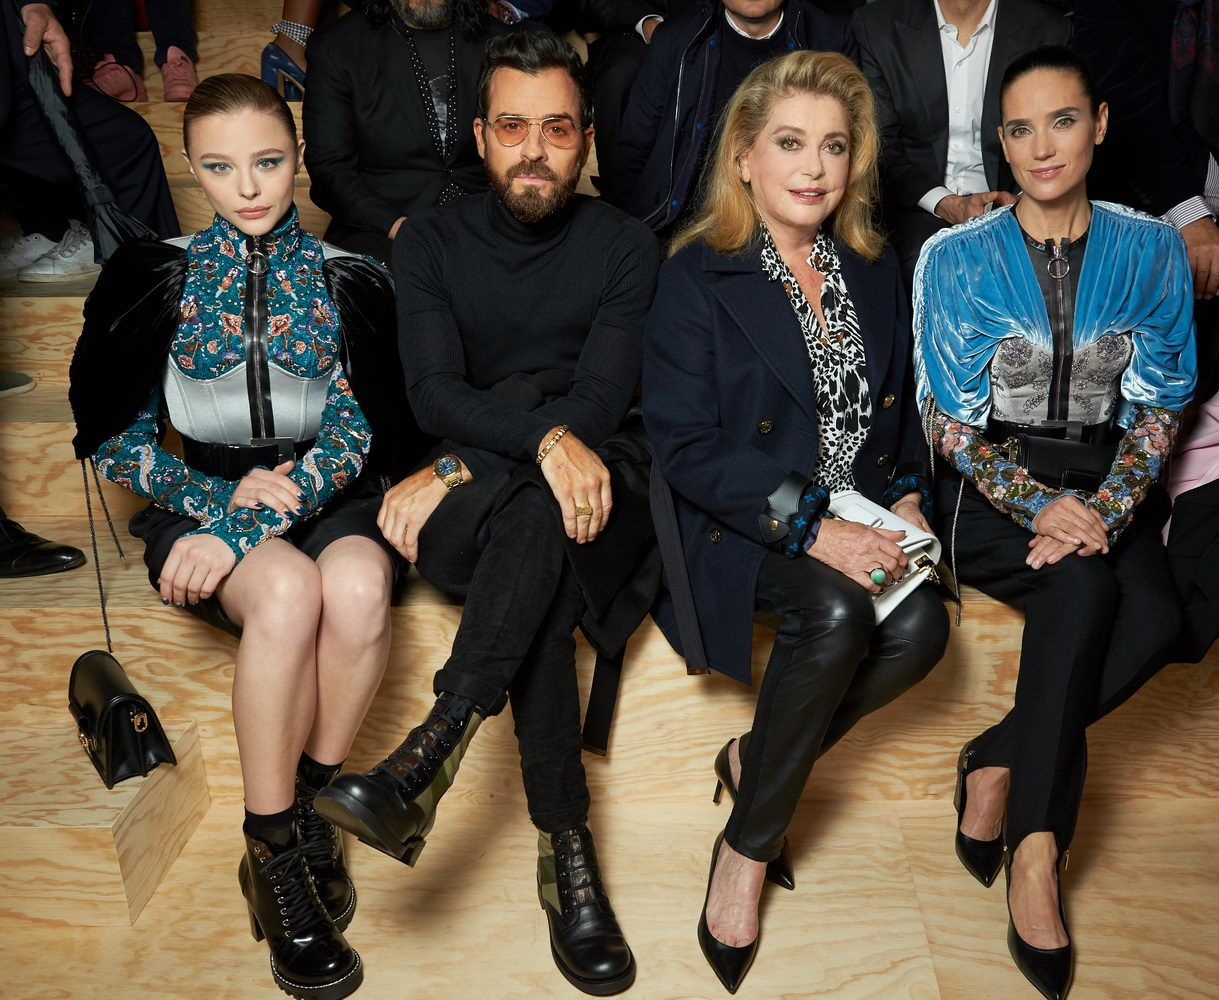 CHLOE GRACE MORETZ, JUSTIN THEROUX, CATHERINE DENEUVE, JENNIFER CONNELLY_resize